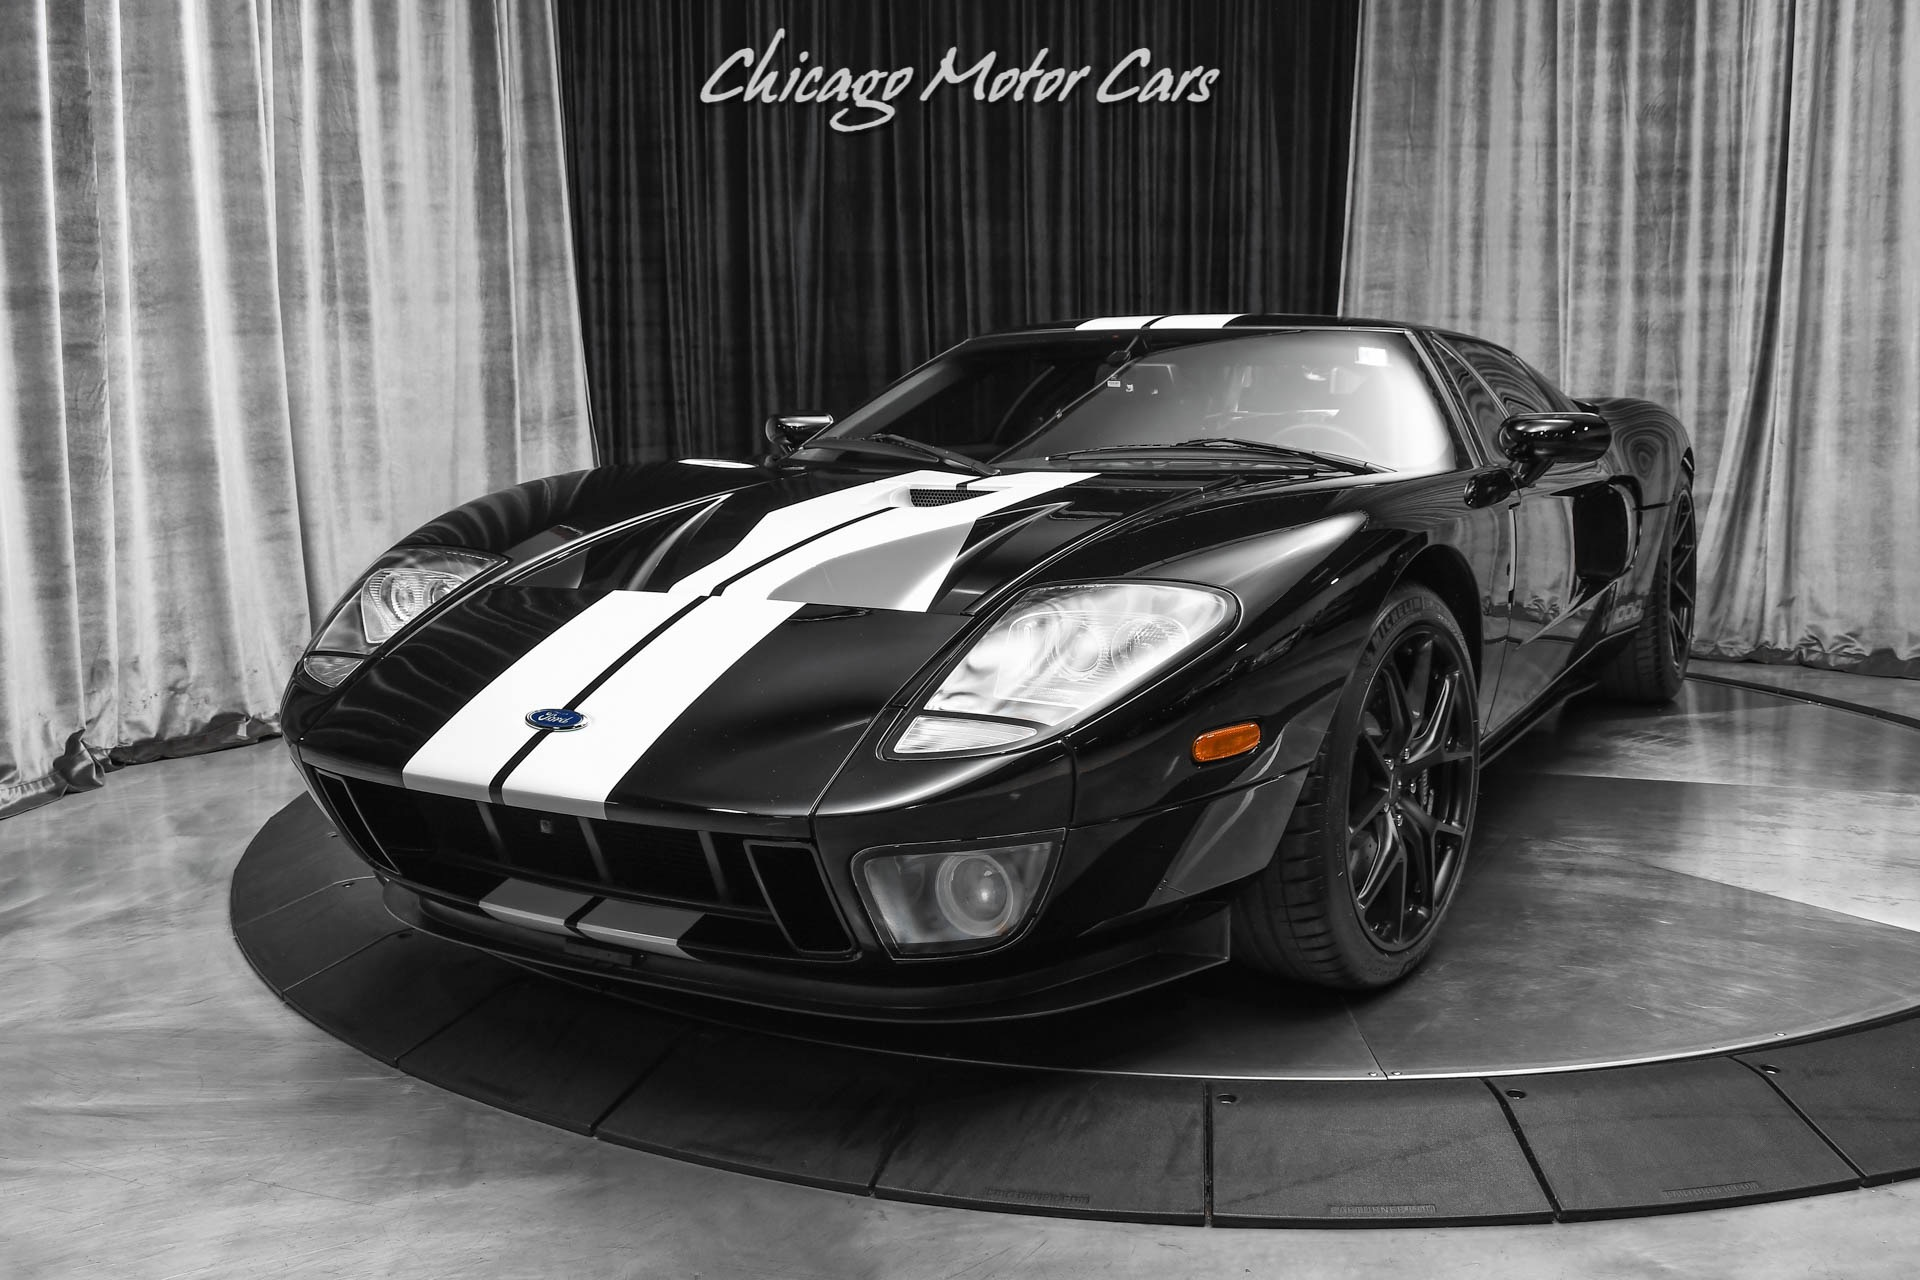 Used-2006-Ford-GT-Coupe-ALL-4-Options-HENNESSEY-GT1000-Package-HRE-Wheels-Black-Stripes